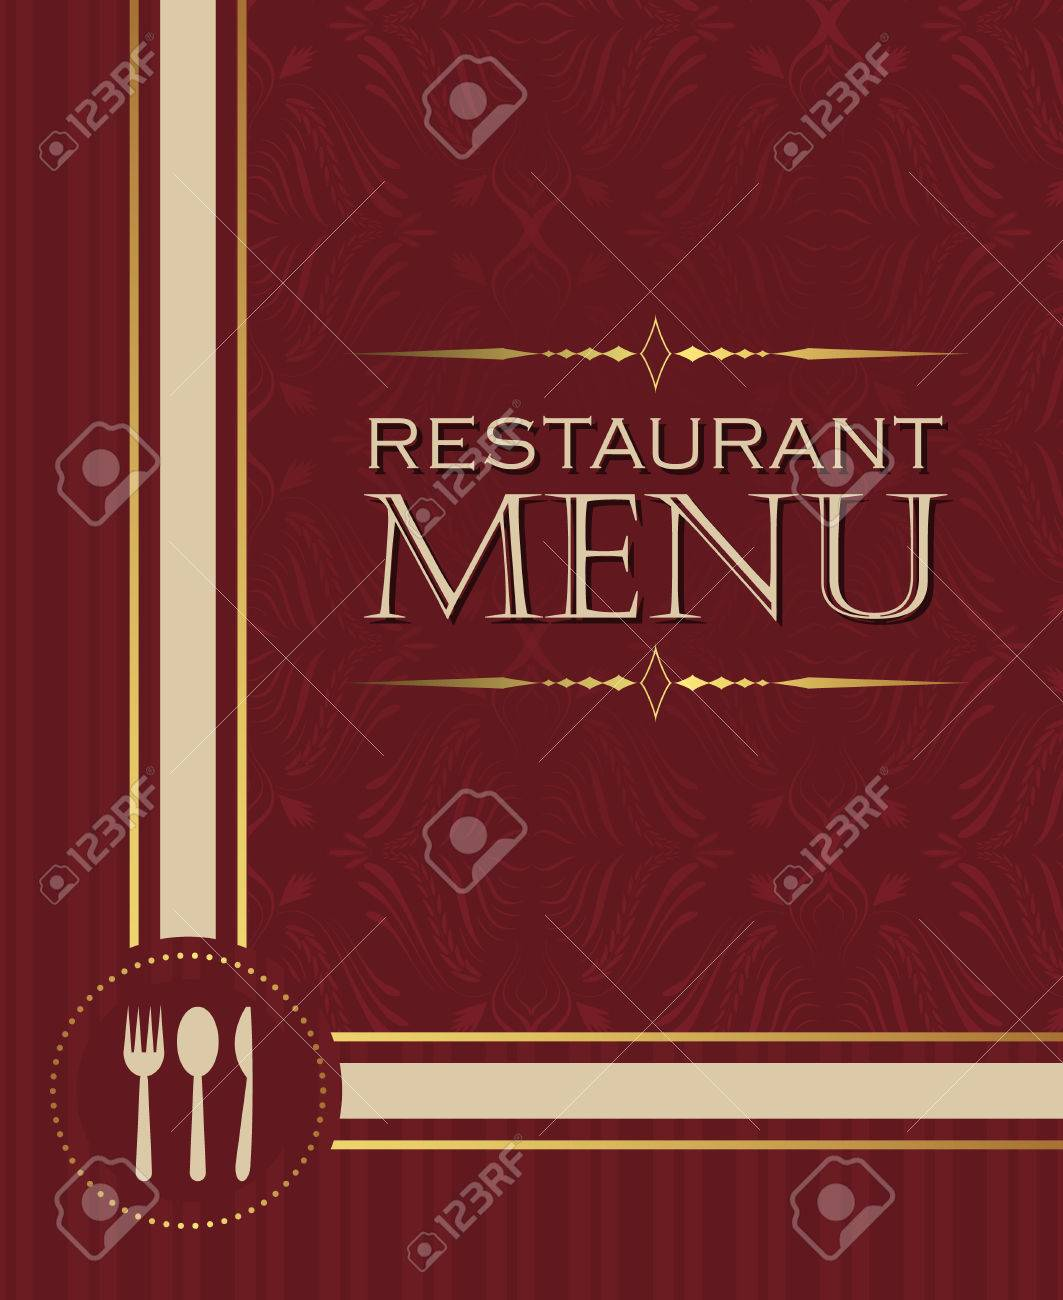 Restaurant Menu Design Cover Template In Retro Style Vector Royalty Free Cliparts Vectors And Stock Illustration Image 43142063